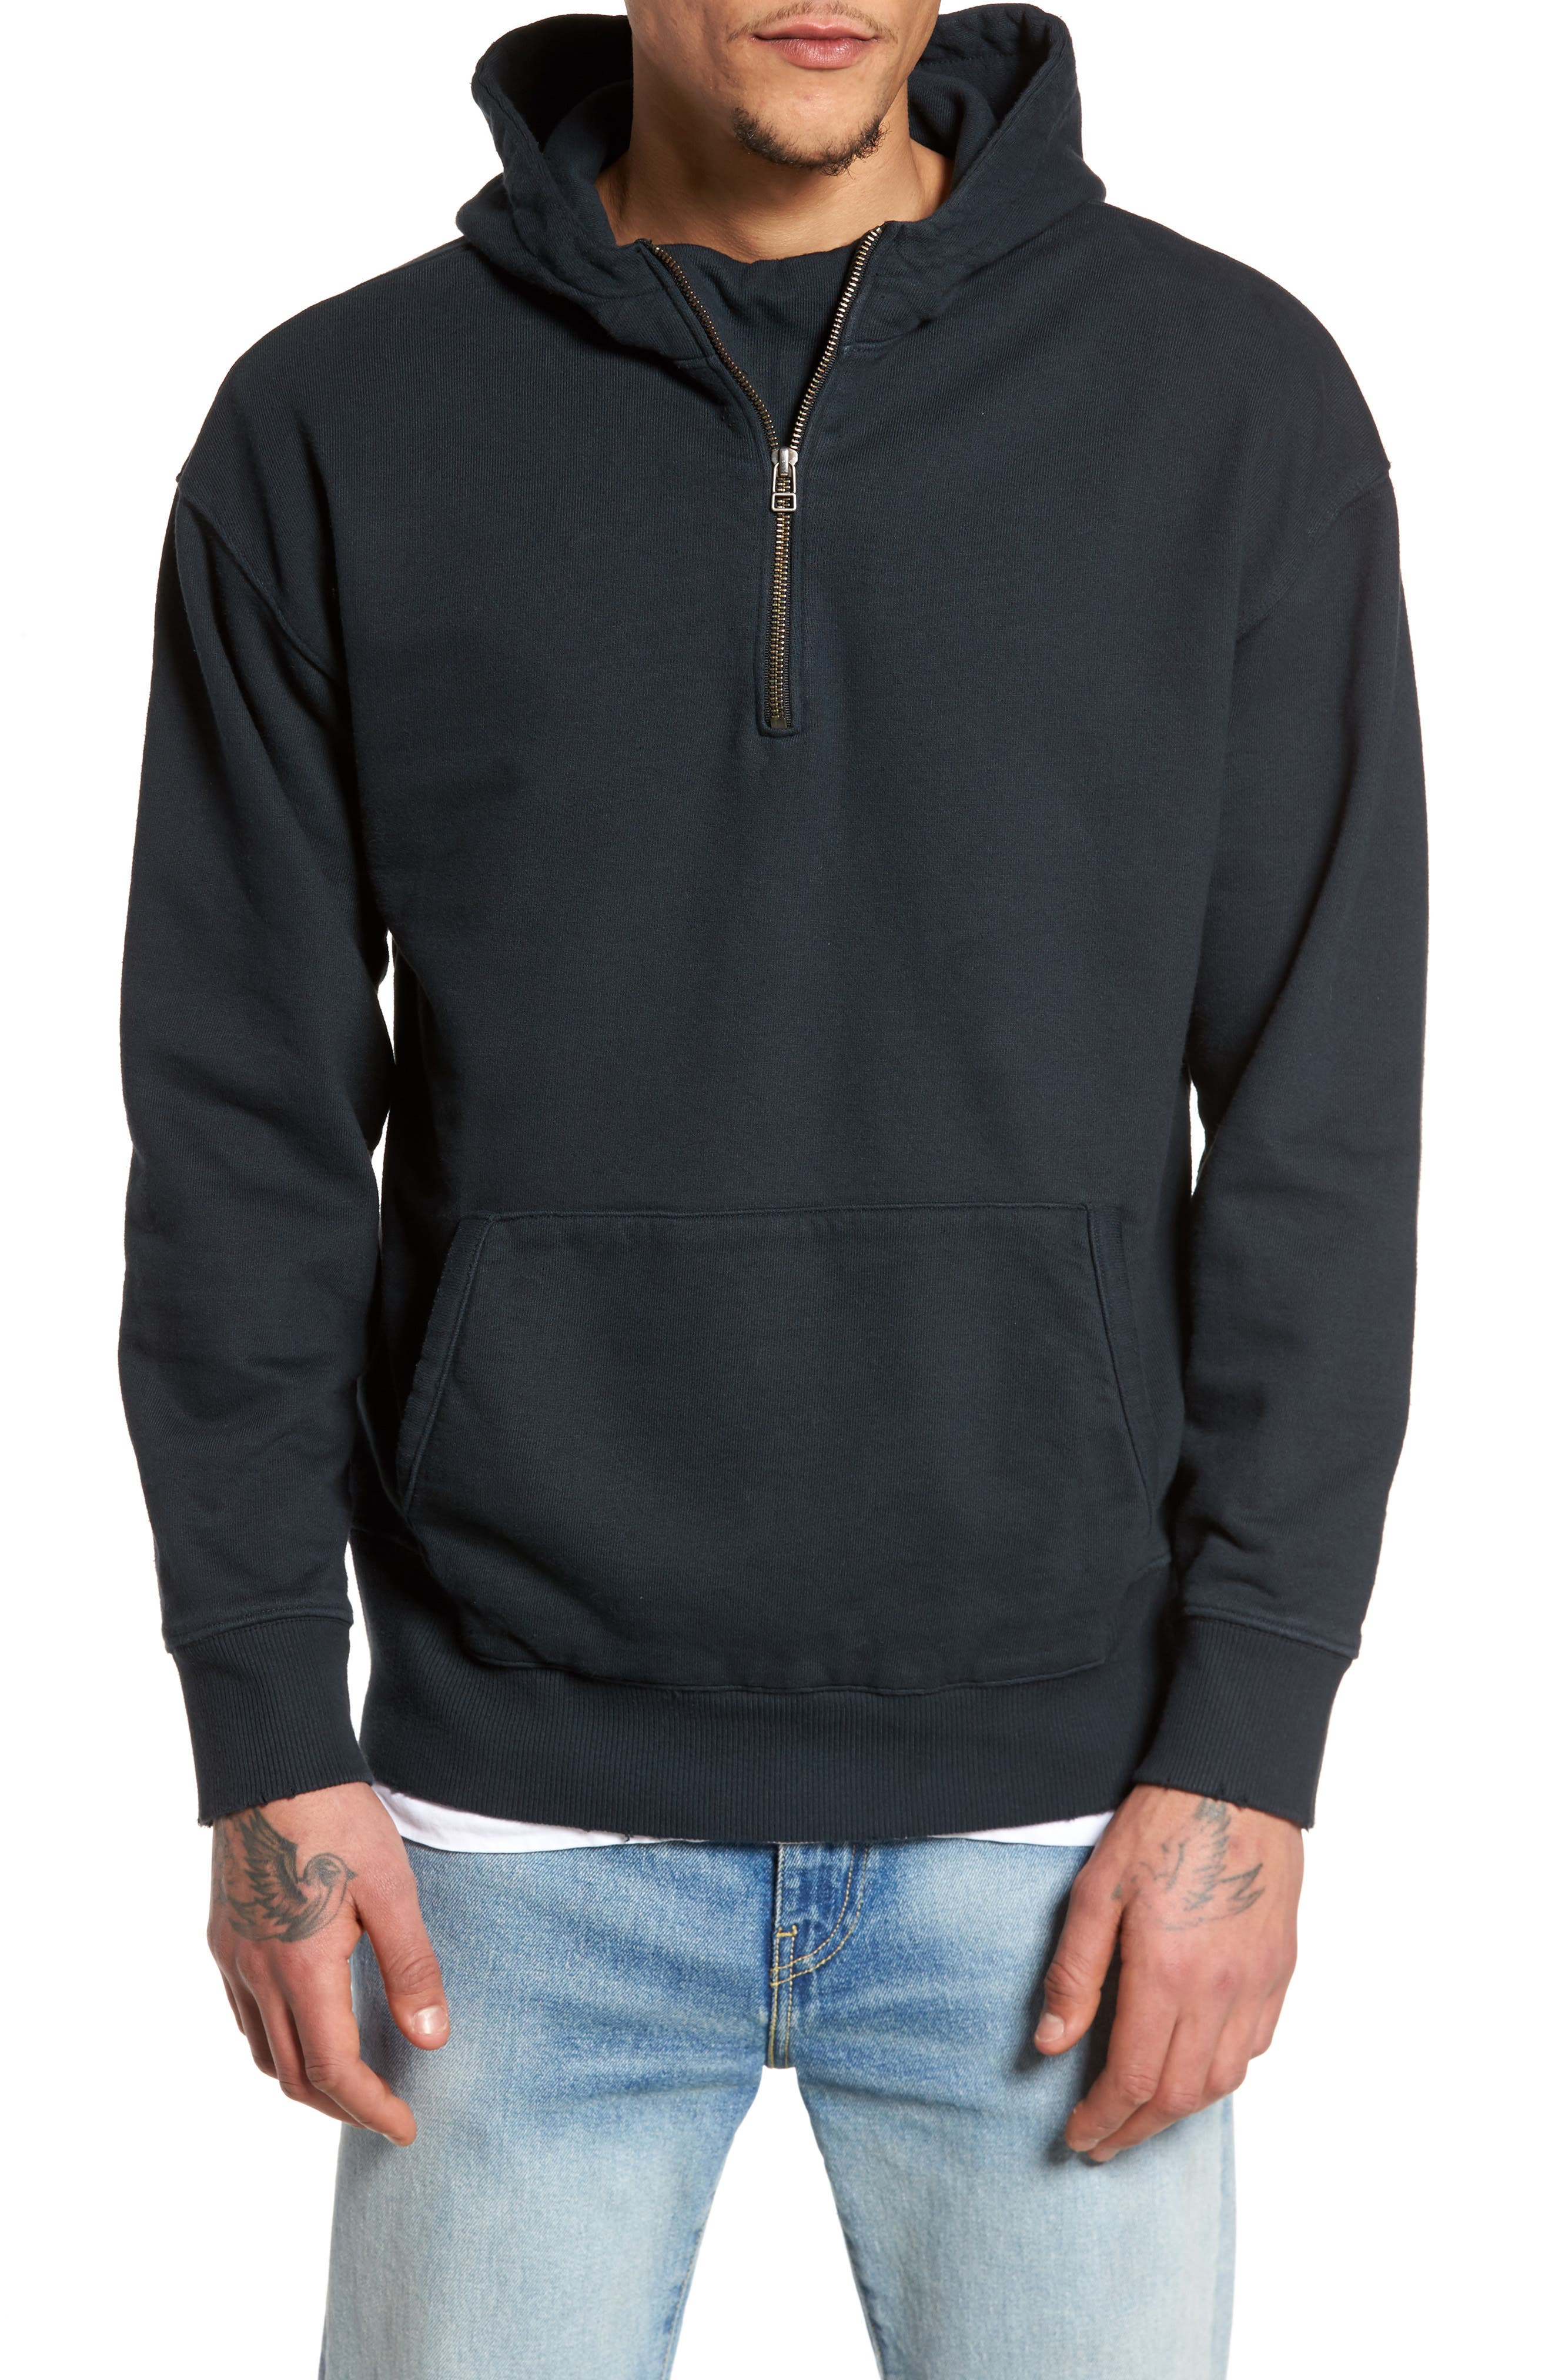 French Terry Hoodie,                         Main,                         color, 001